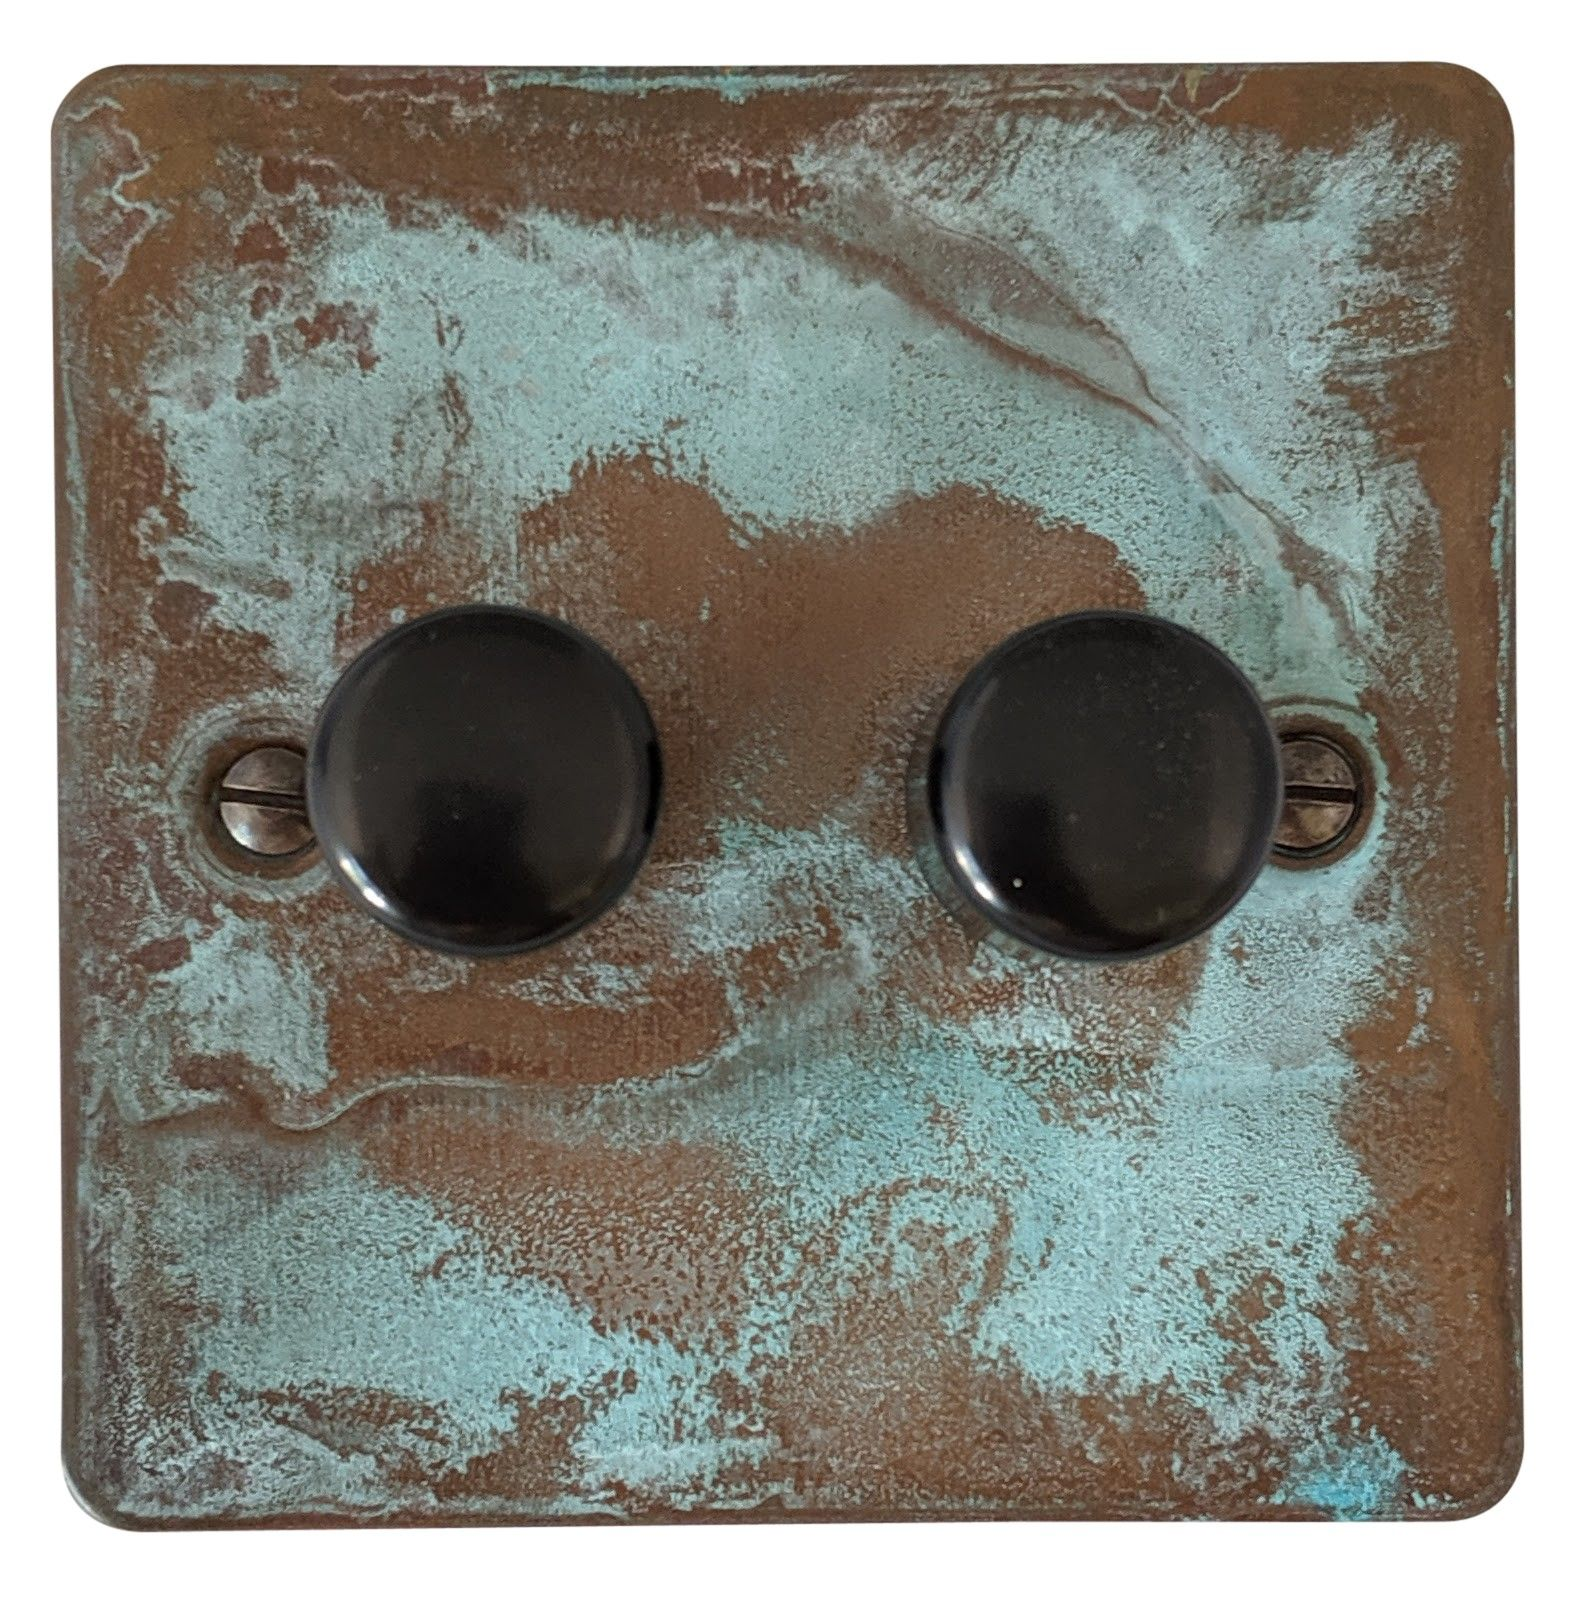 G&H FV12 Flat Plate Verdigris 2 Gang 1 or 2 Way 40-400W Dimmer Switch